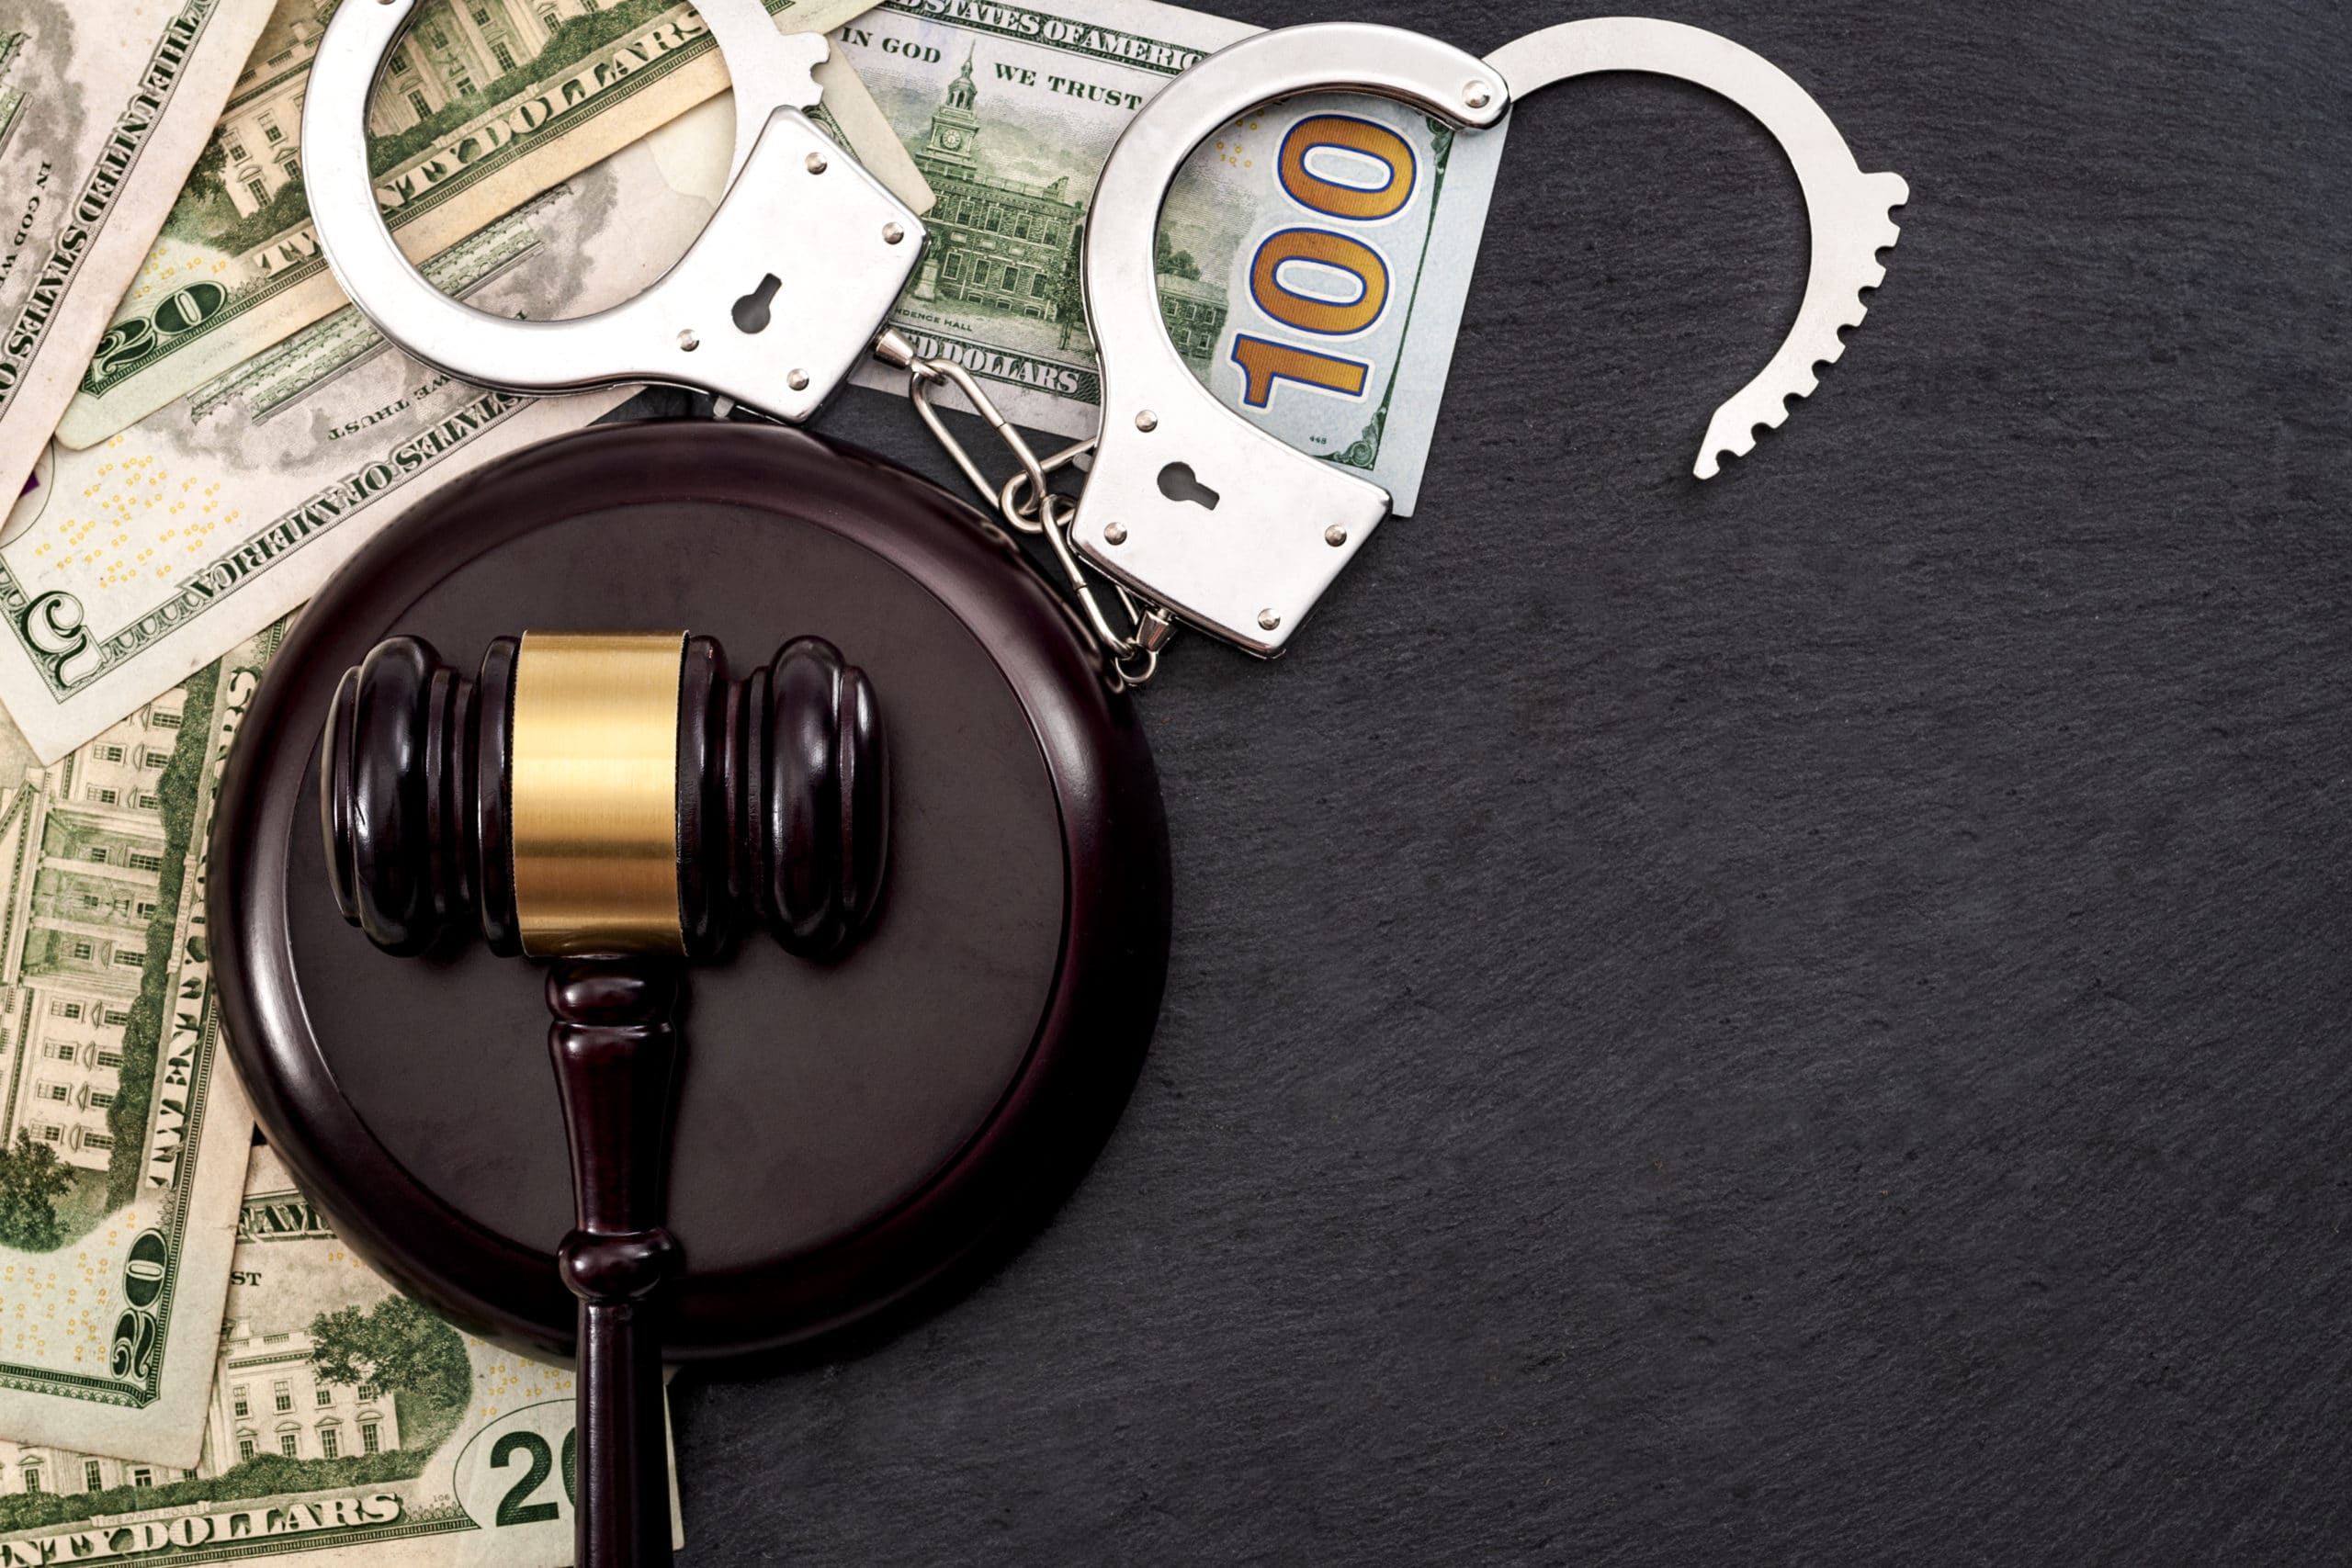 Two Doctors & Two Lawyers Charged In Five Year Slip-And-Fall Scam Targeting Poor People